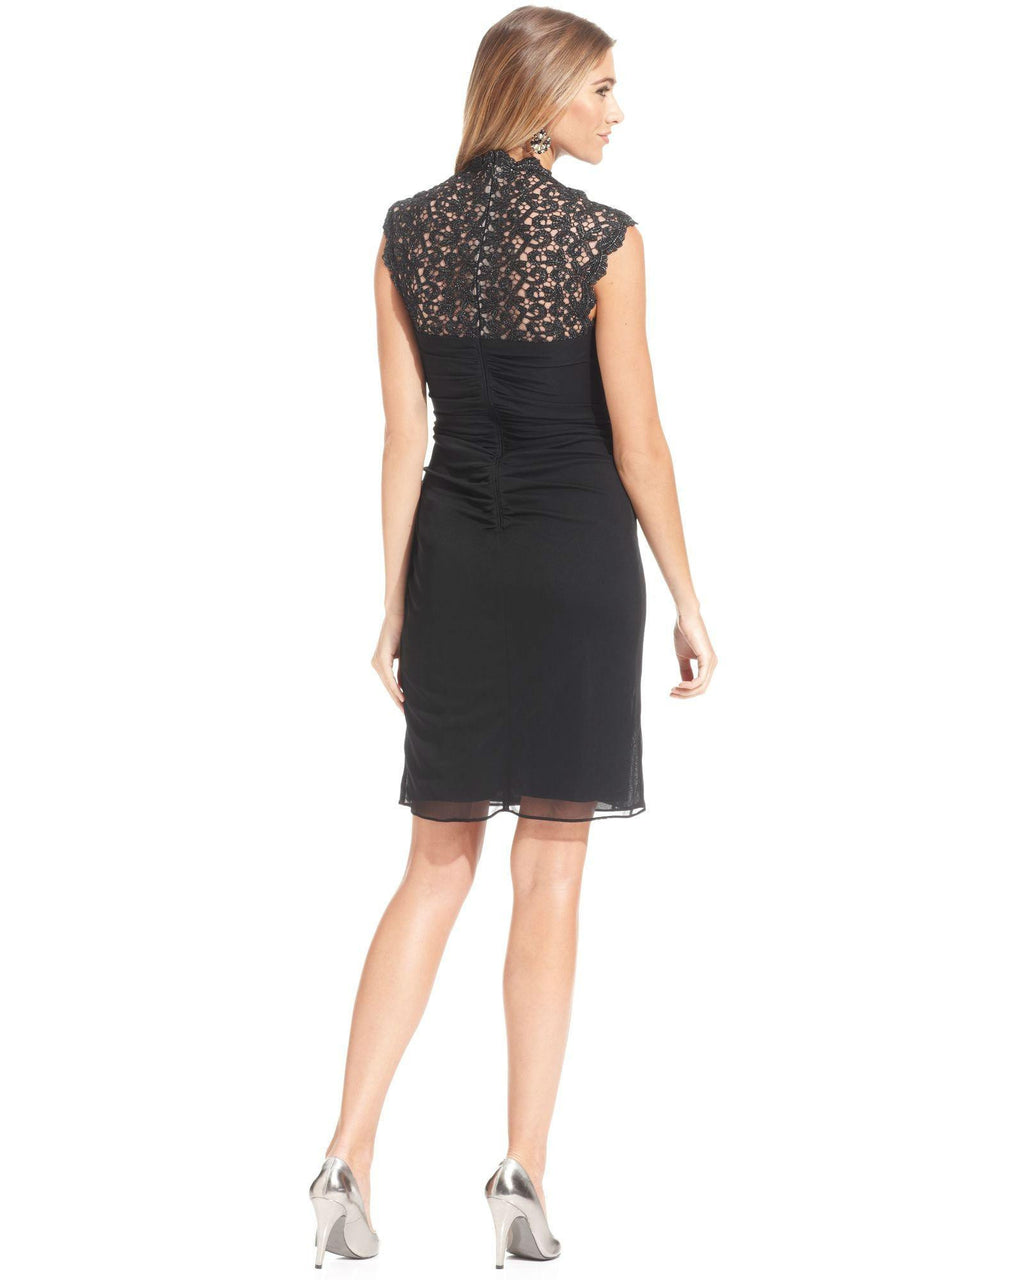 Xscape Cap -Sleeve Metallic Lace Dress-XSCAPE EVENINGS-Fashionbarn shop